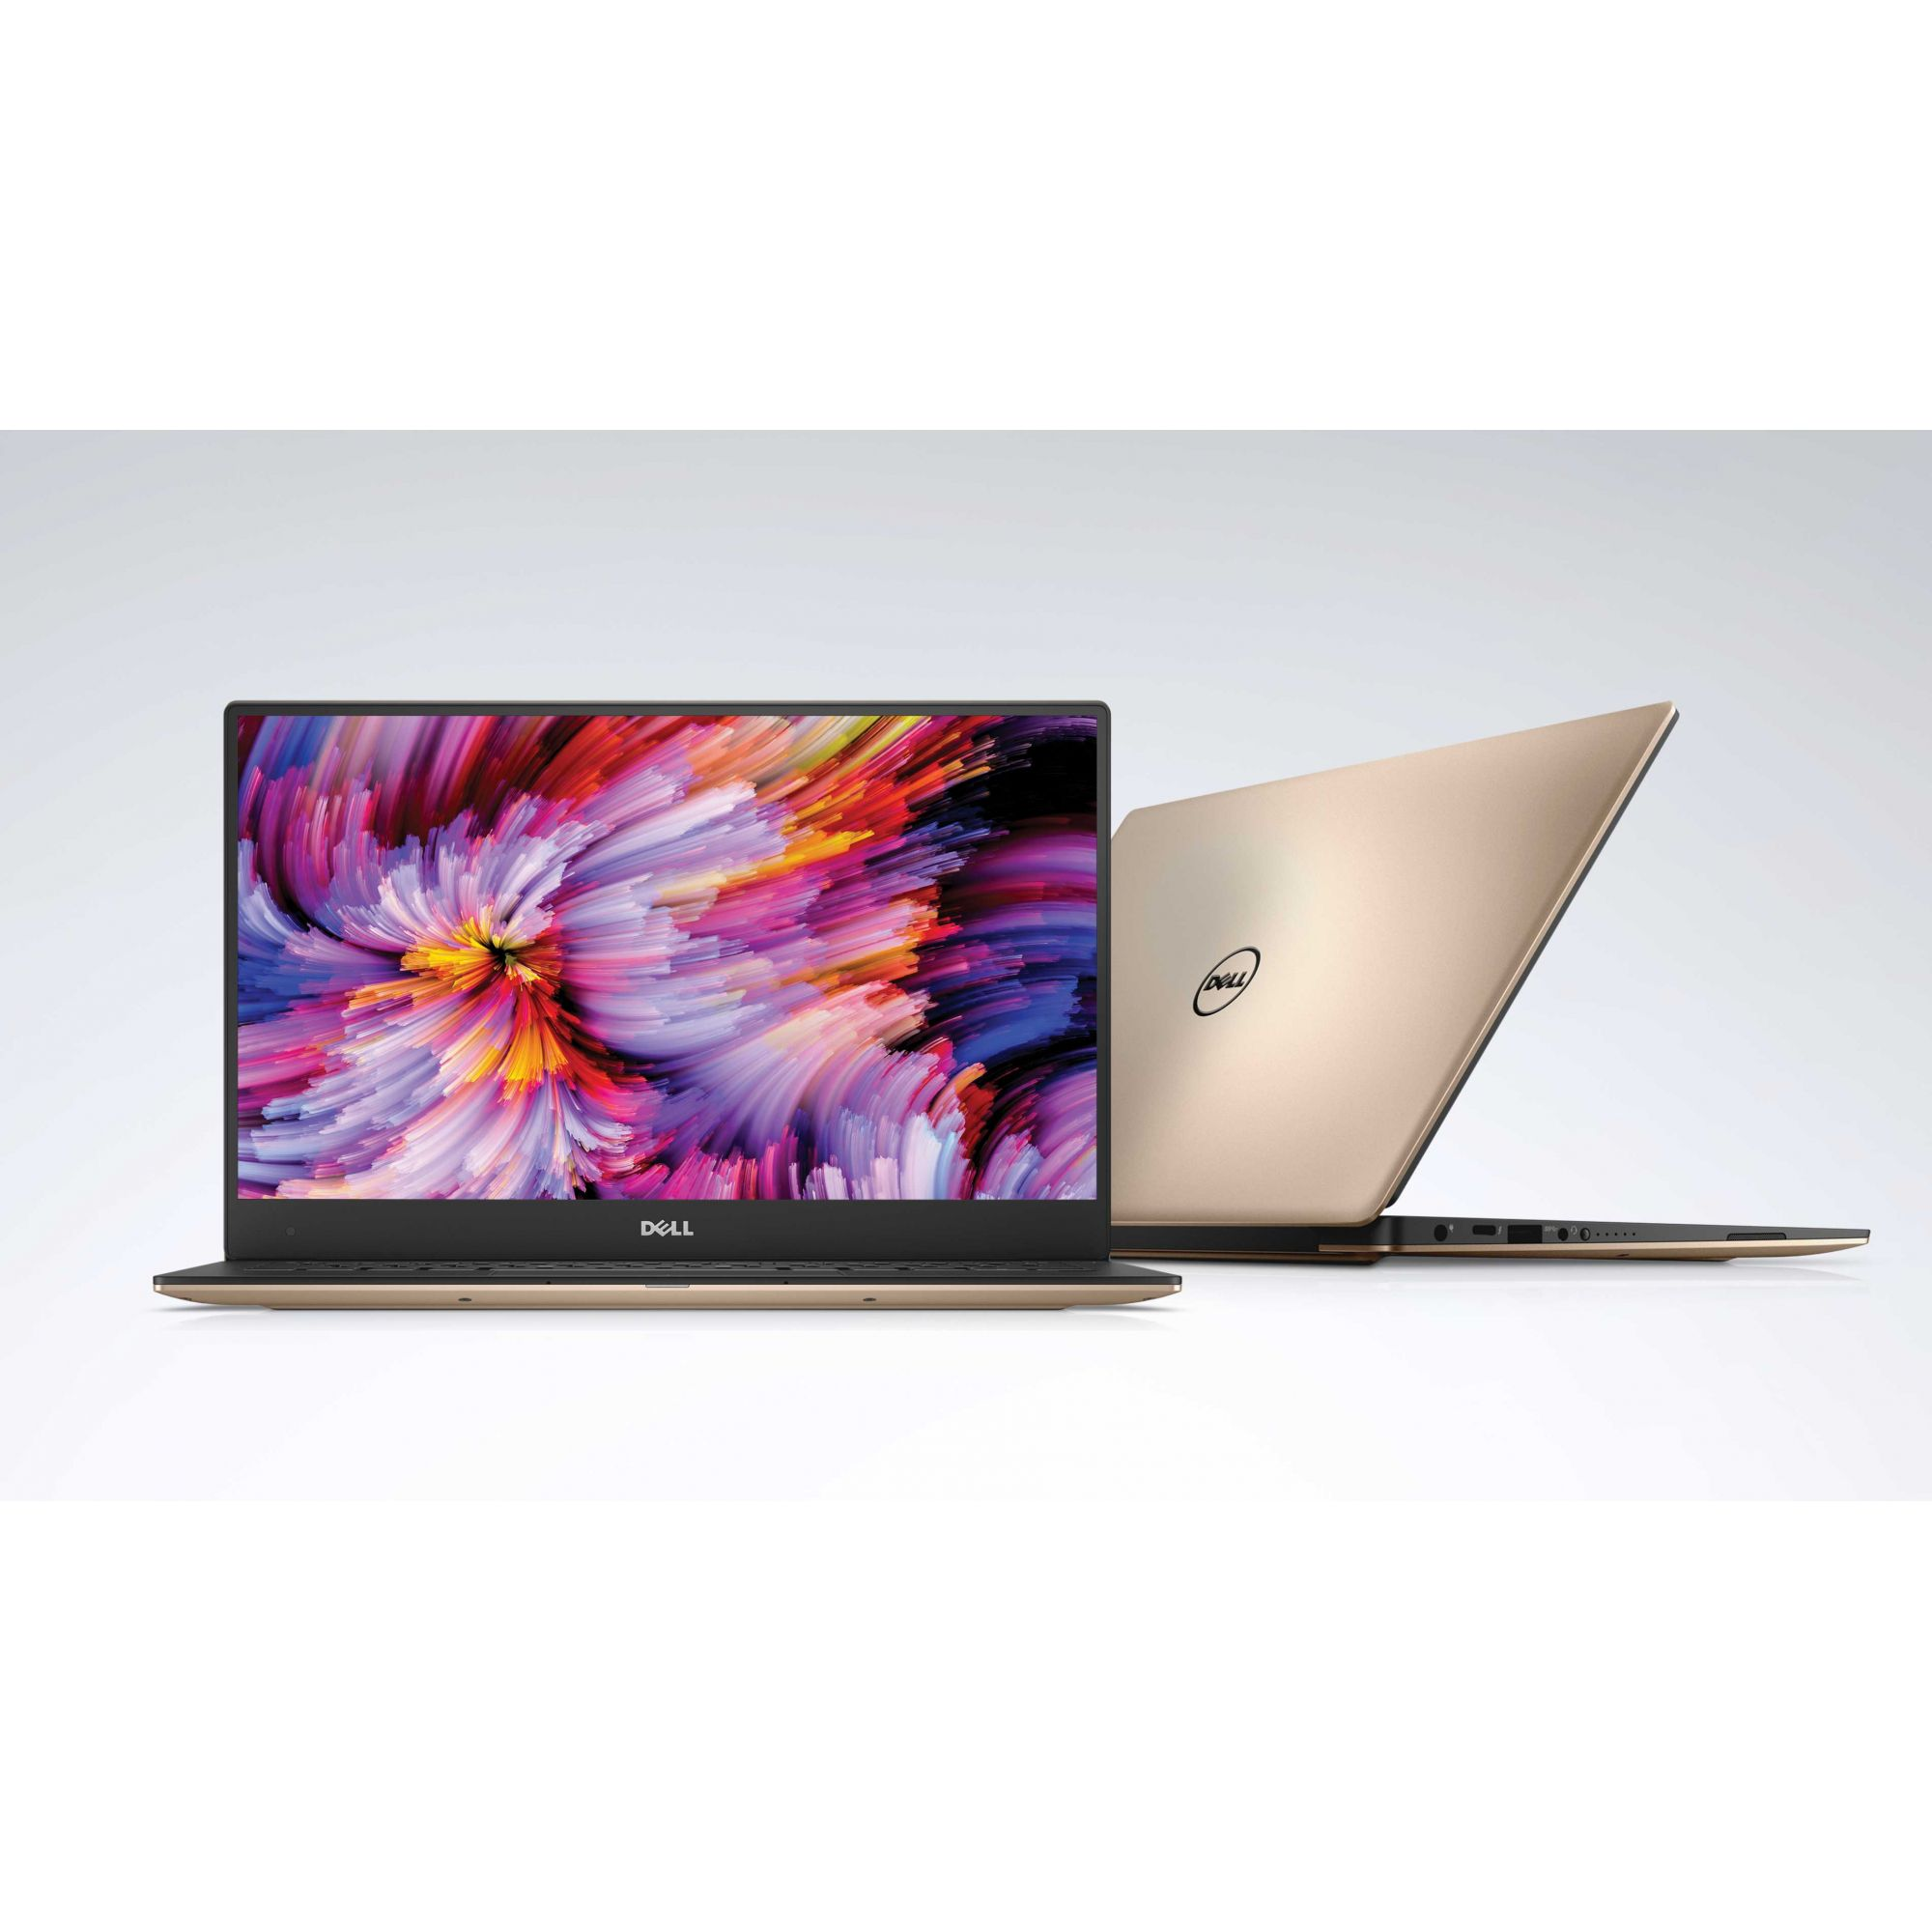 Notebook Dell Inspiron 7460 i7-7500| 8GB DDR4| HD 1TB| GeForce 940 MX 4GB DDR5| 14.0 FHD| Win10 Home